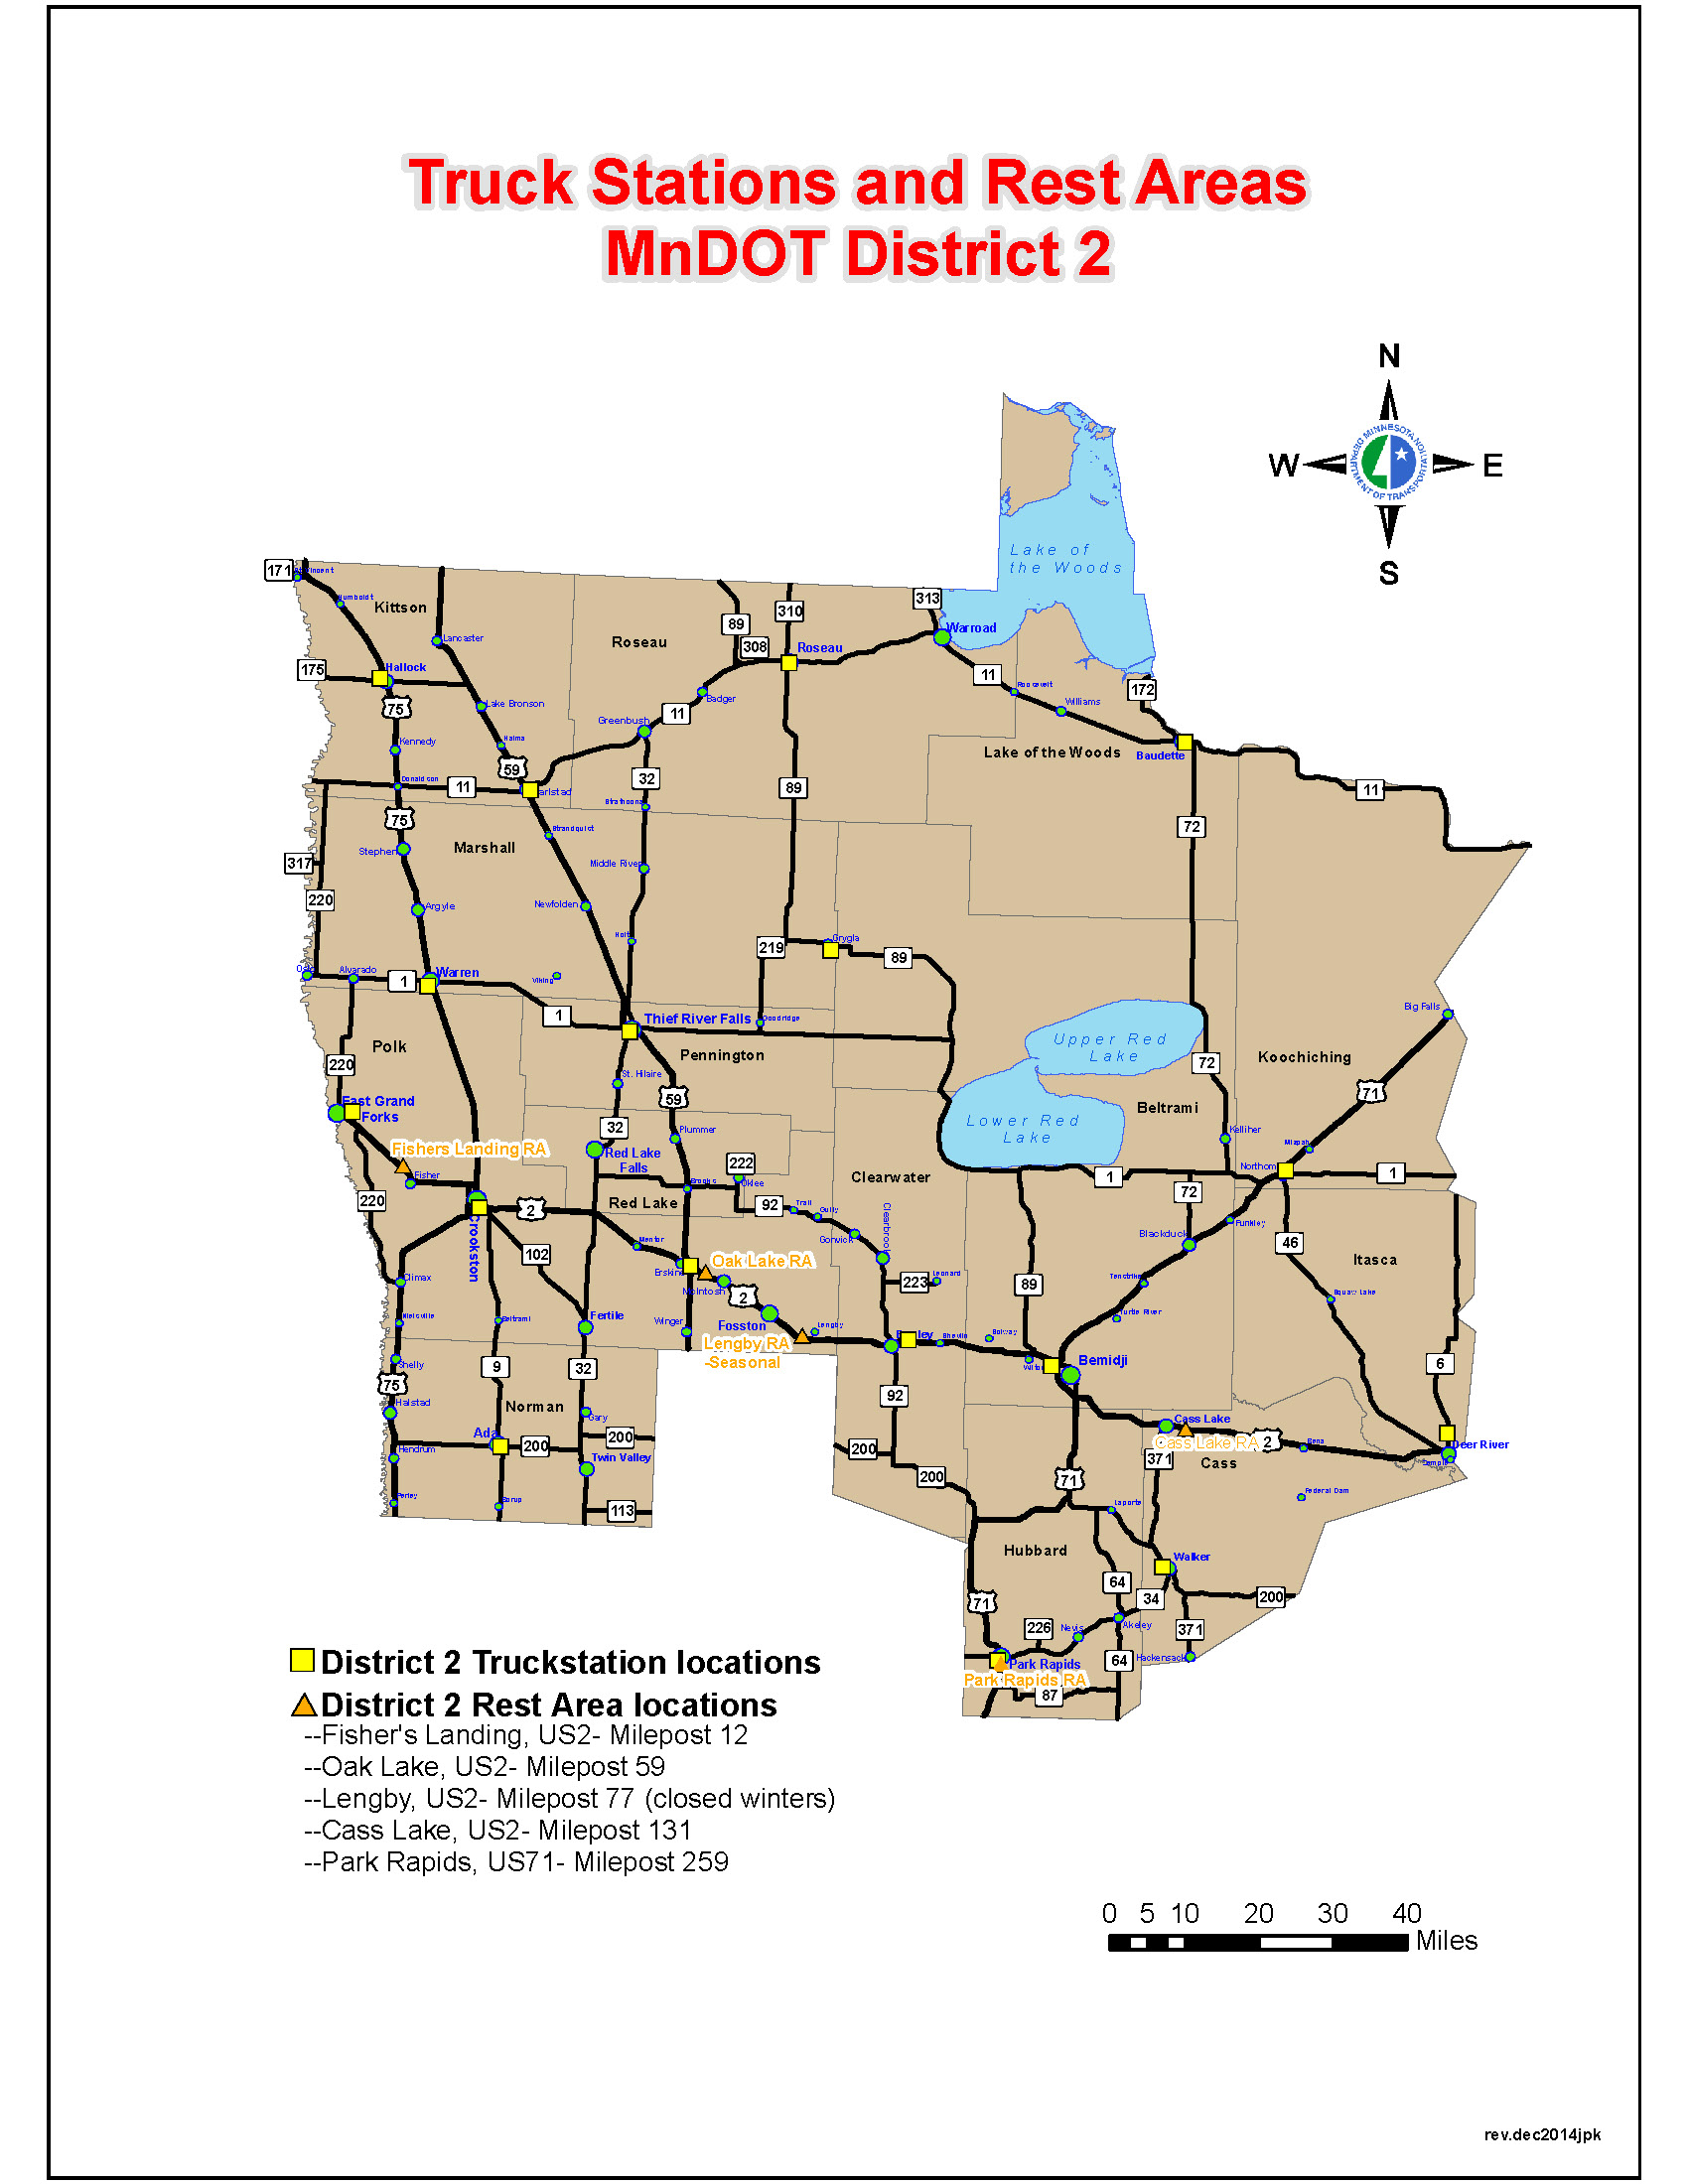 Map of MnDOT District 2, covering Northwest Minnesota.